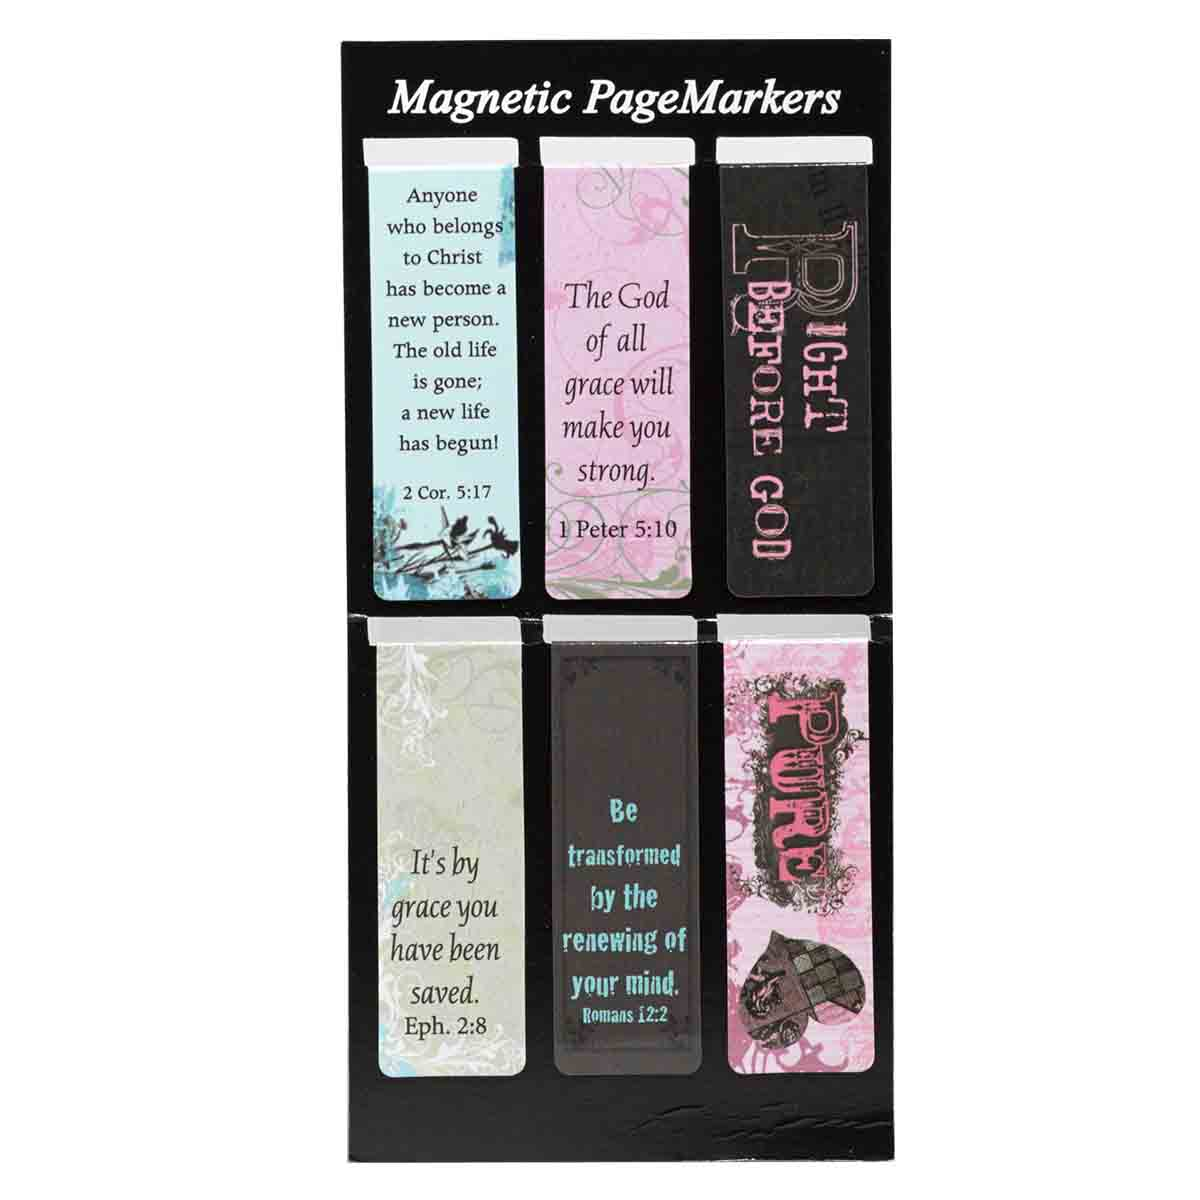 Grace (Magnetic Pagemarkers)